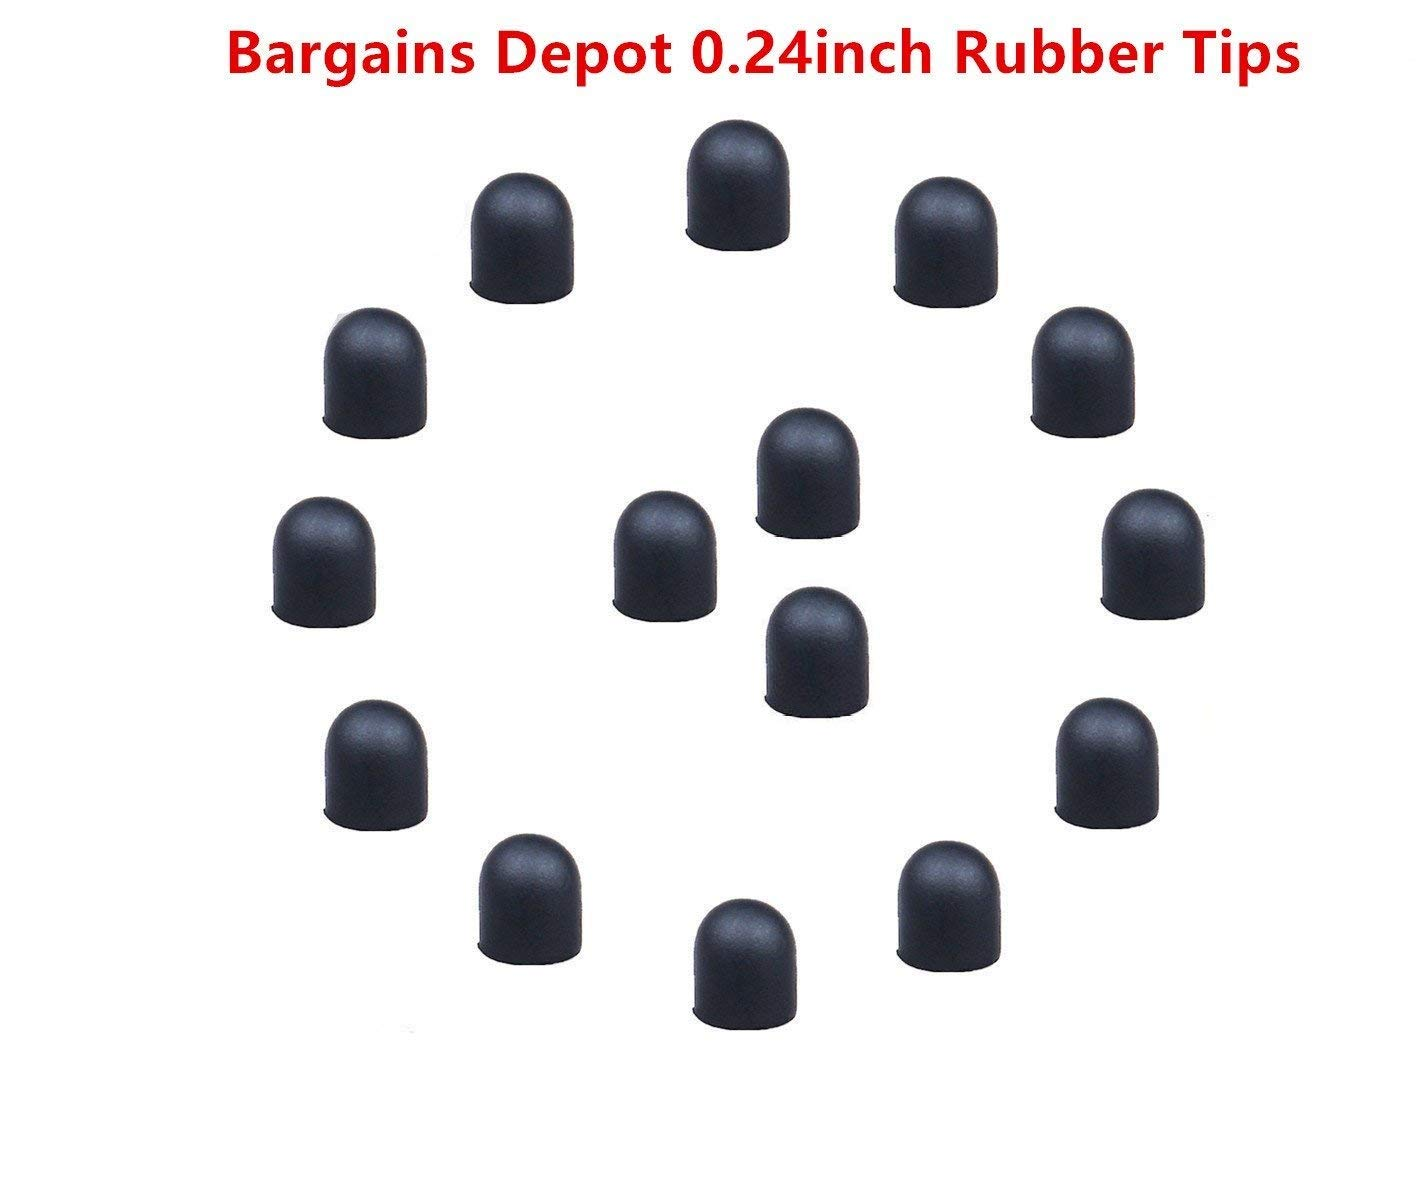 Bargains Depot 15Pcs 0.24' (Dia) Soft Replacement Rubber Tips Please Note : These Tips (Only Fit/for Bargains Depot 2-in-1 Stylus) 4326581434